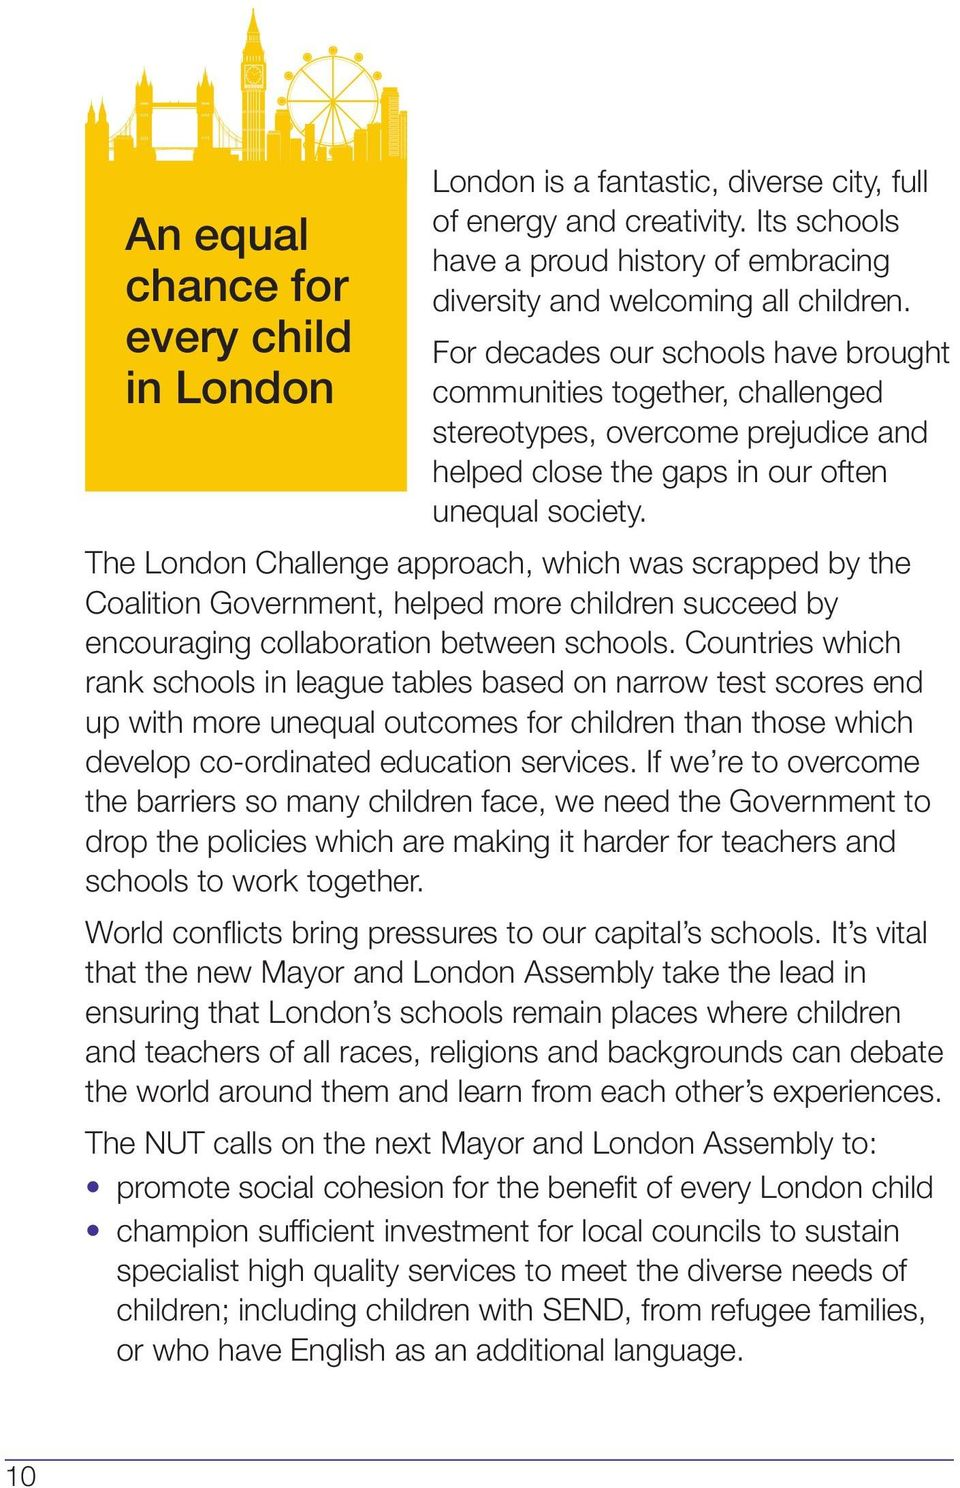 The London Challenge approach, which was scrapped by the Coalition Government, helped more children succeed by encouraging collaboration between schools.